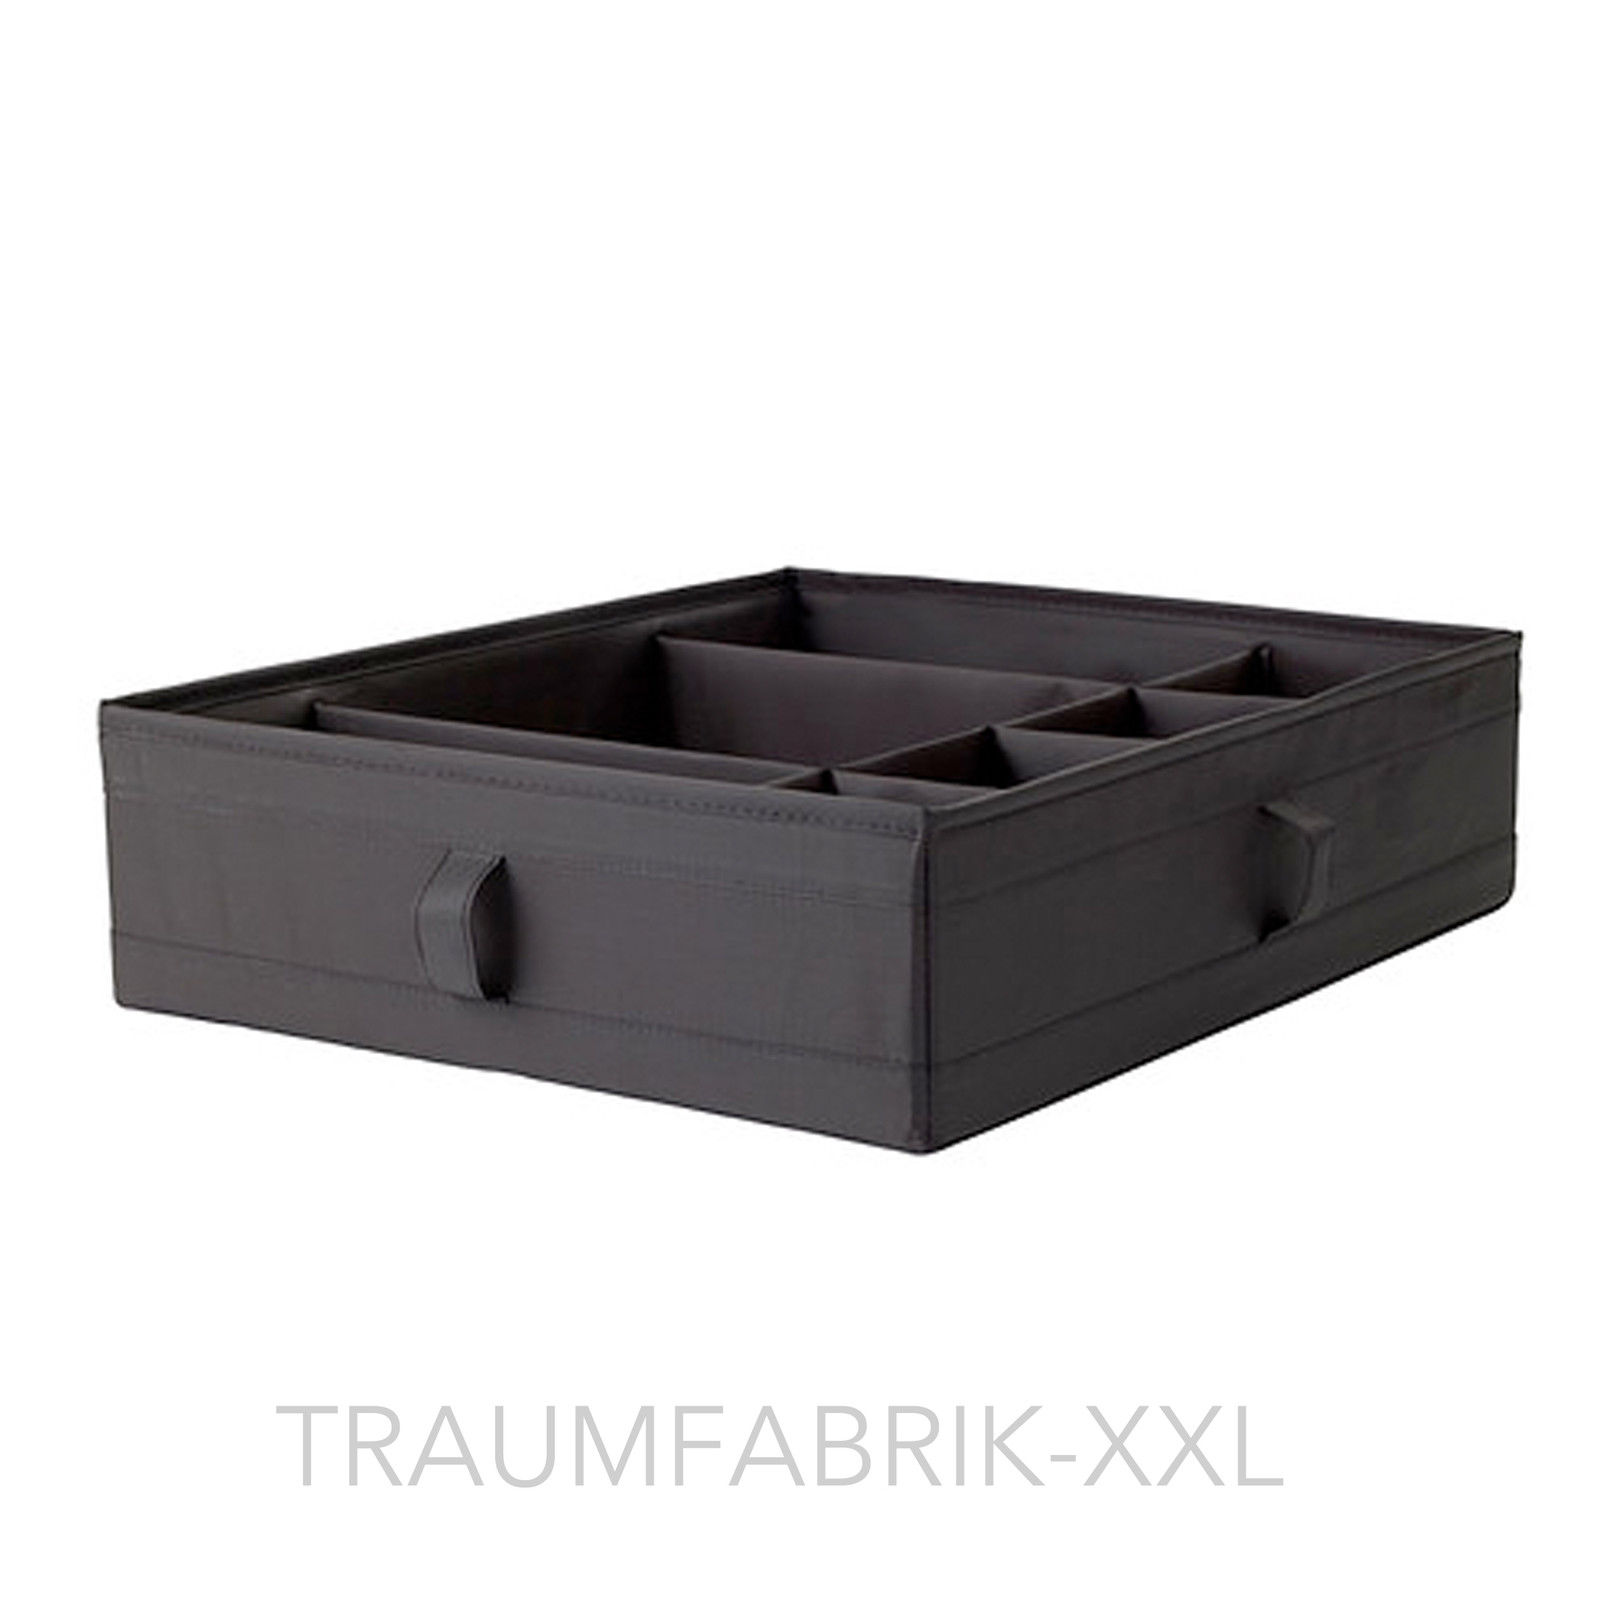 kasten mit f chern 44x34x11cm aufbewahrung aufbewahrungsbox box regalbox schwarz traumfabrik xxl. Black Bedroom Furniture Sets. Home Design Ideas